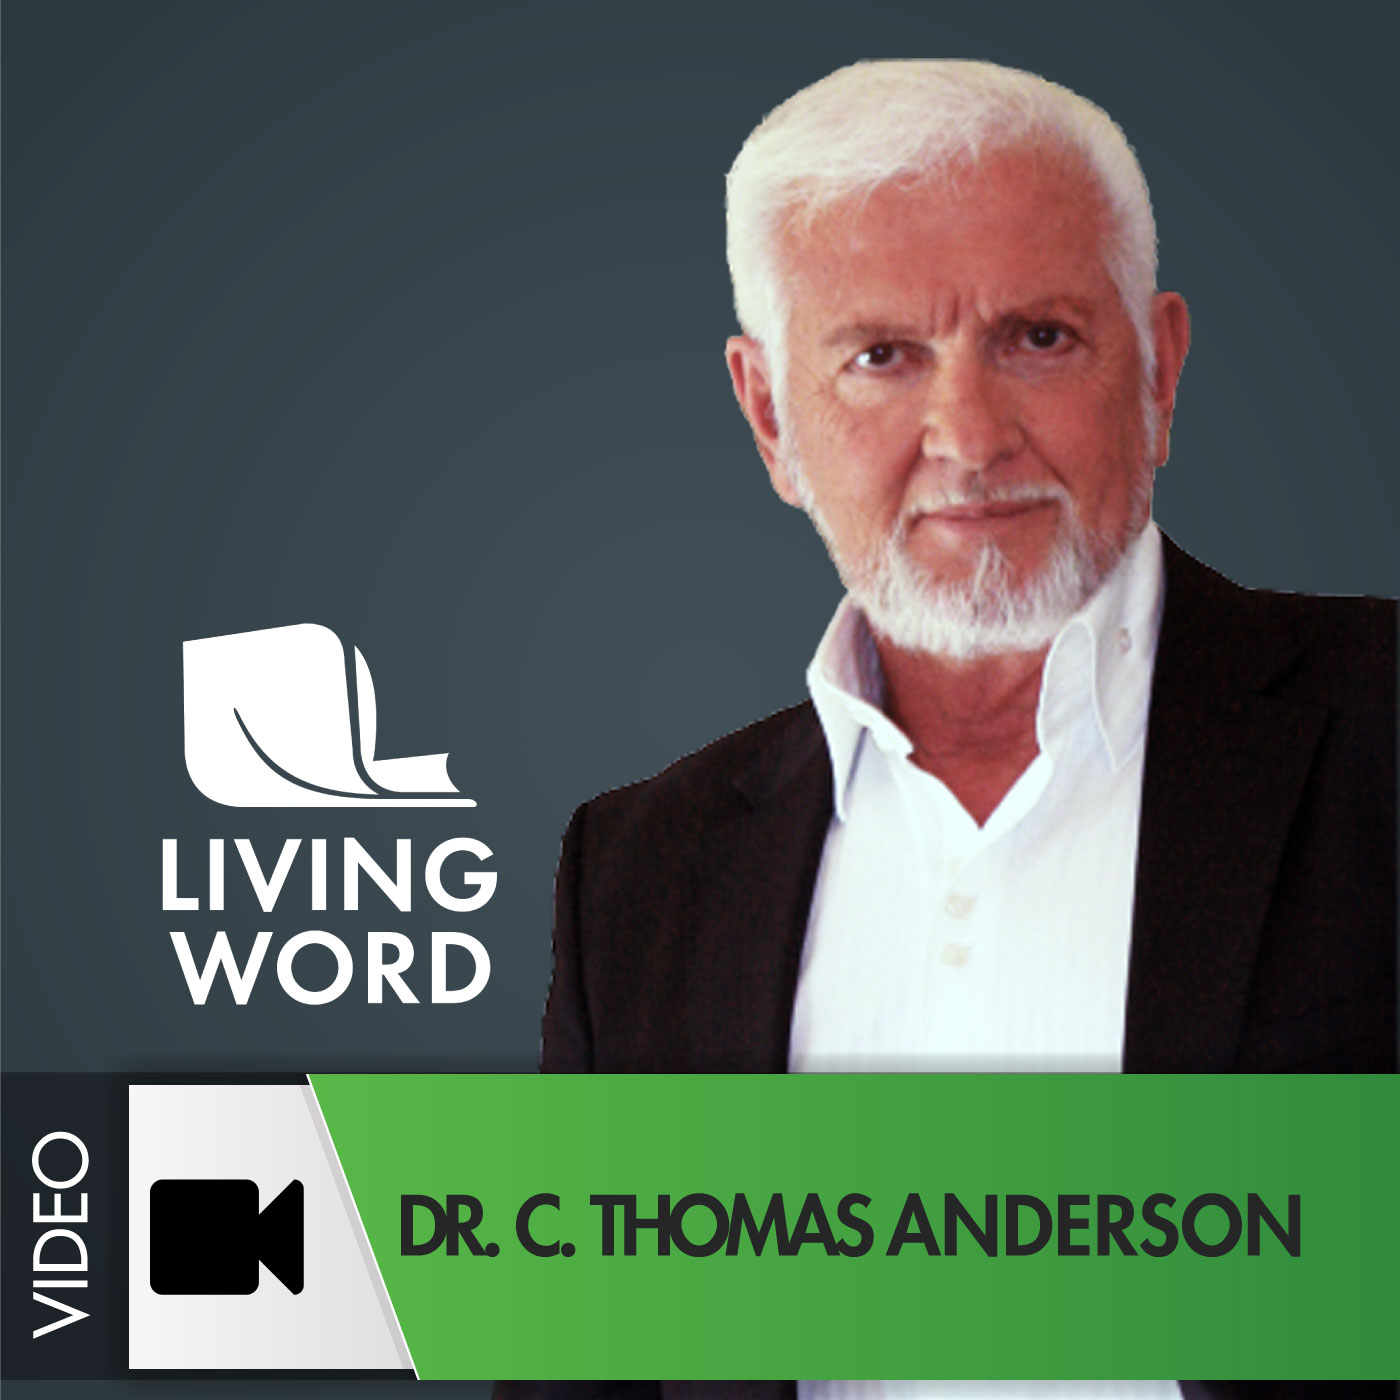 Dr. C Thomas Anderson Video Podcast